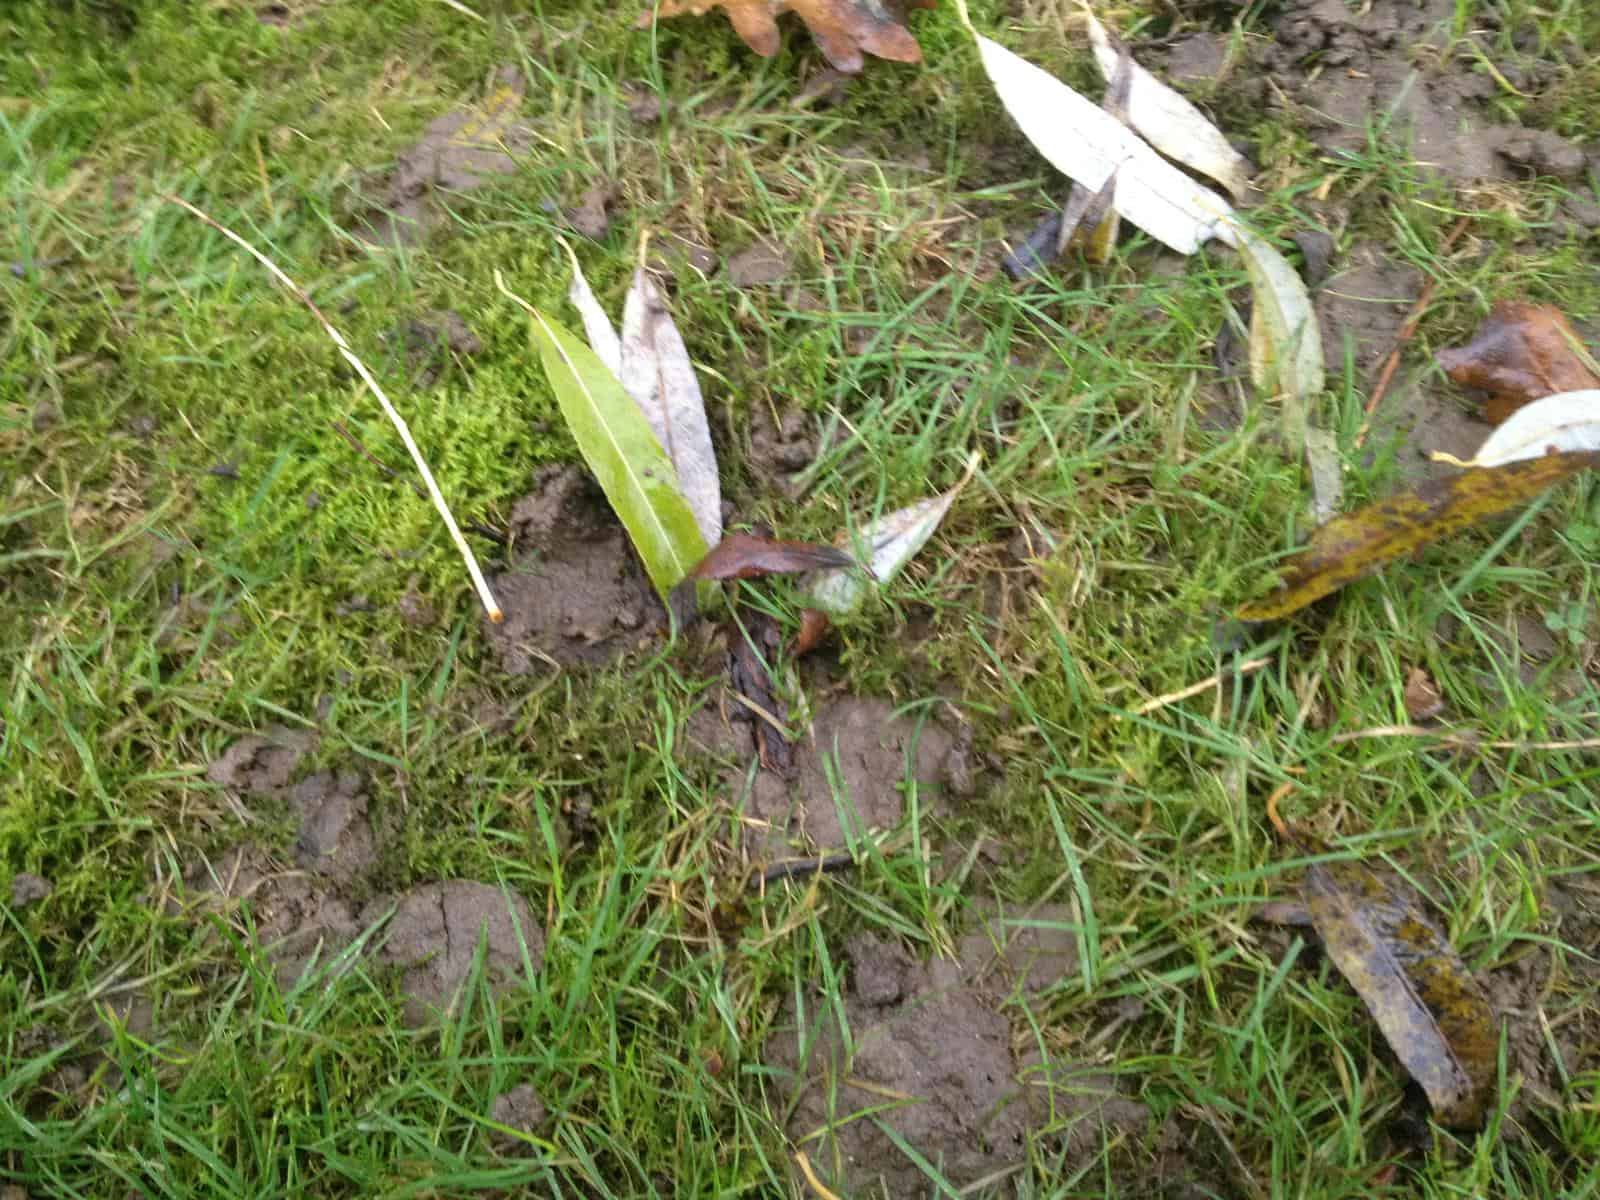 earthworm cast and leaf partially dragged into a burrow